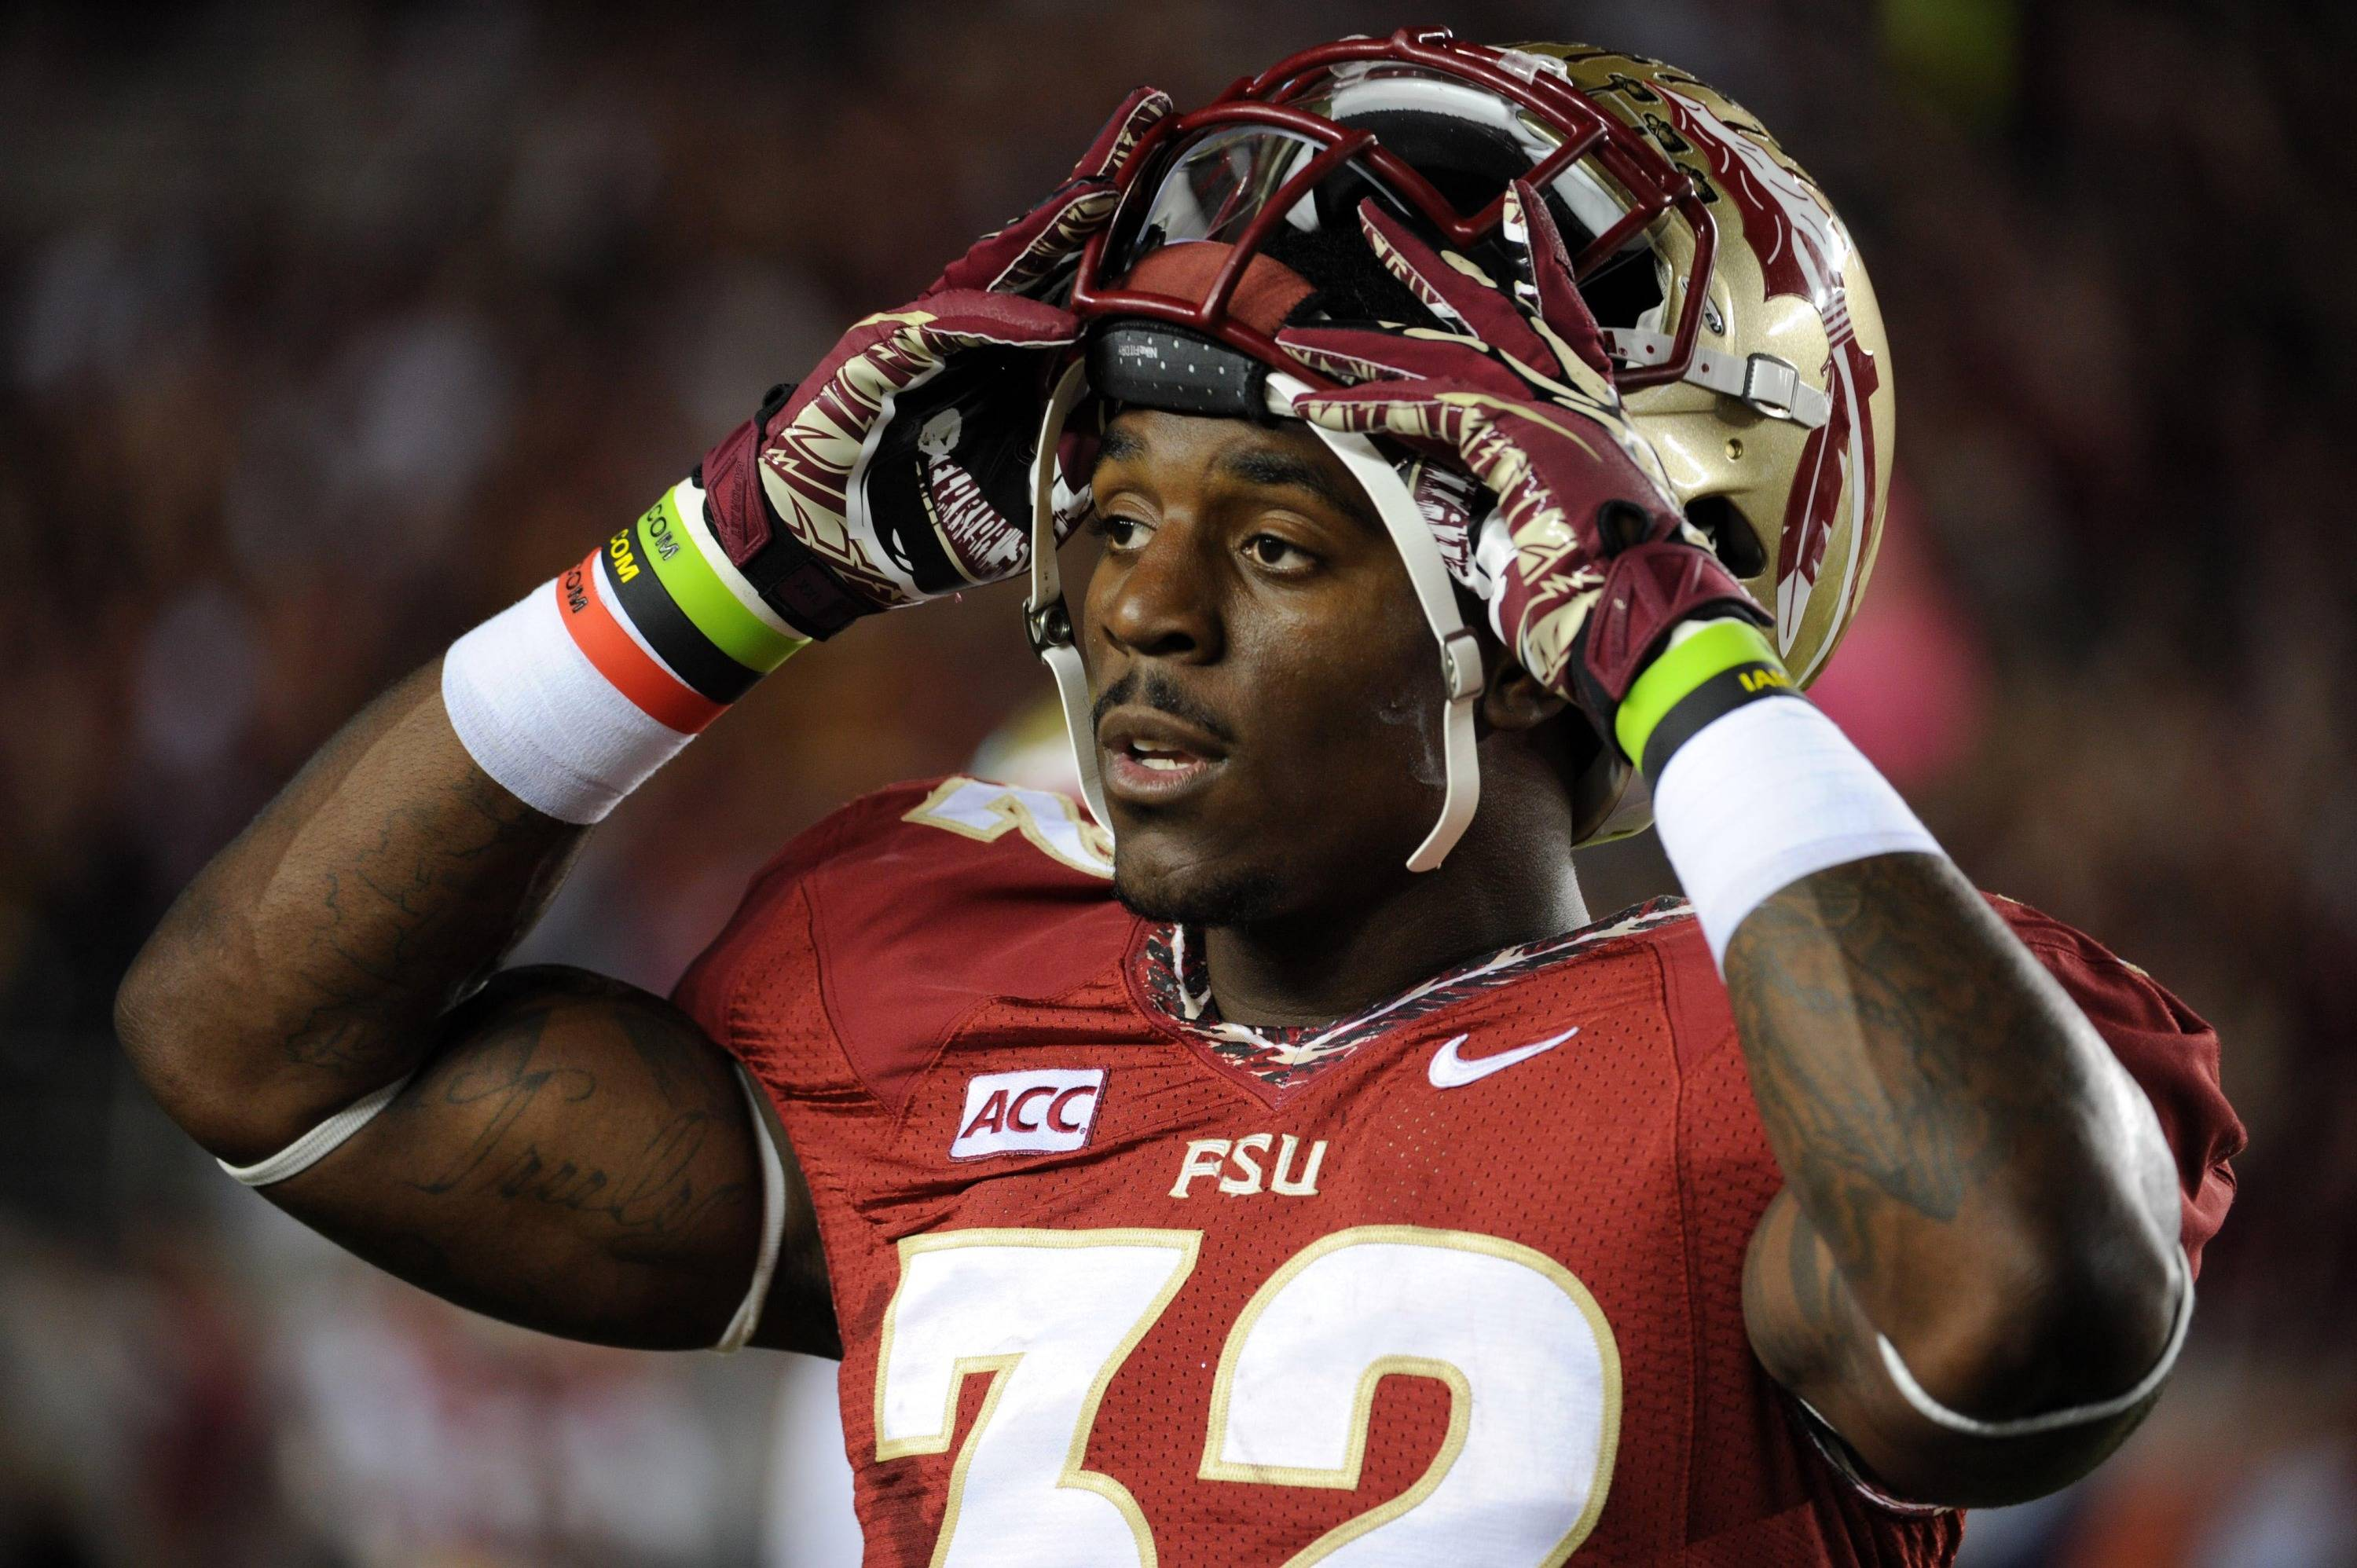 Florida State Seminoles running back James Wilder Jr. (32) before the start of the game against the Miami Hurricanes at Doak Campbell Stadium. Mandatory Credit: Melina Vastola-USA TODAY Sports